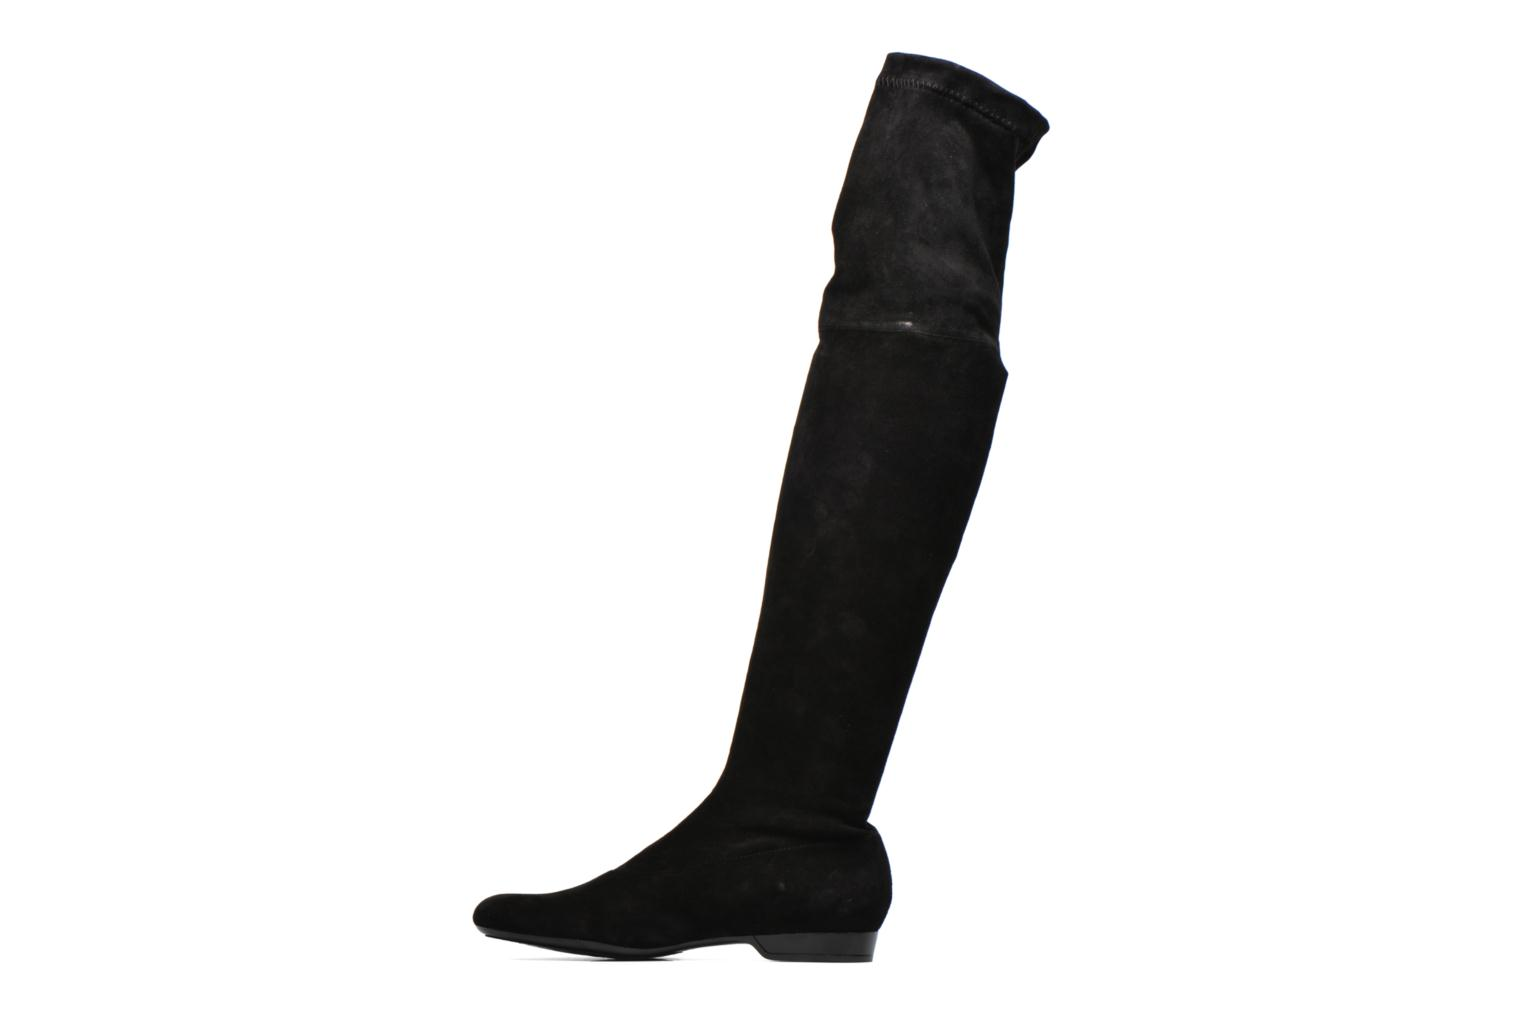 Fissal velours stretch noir